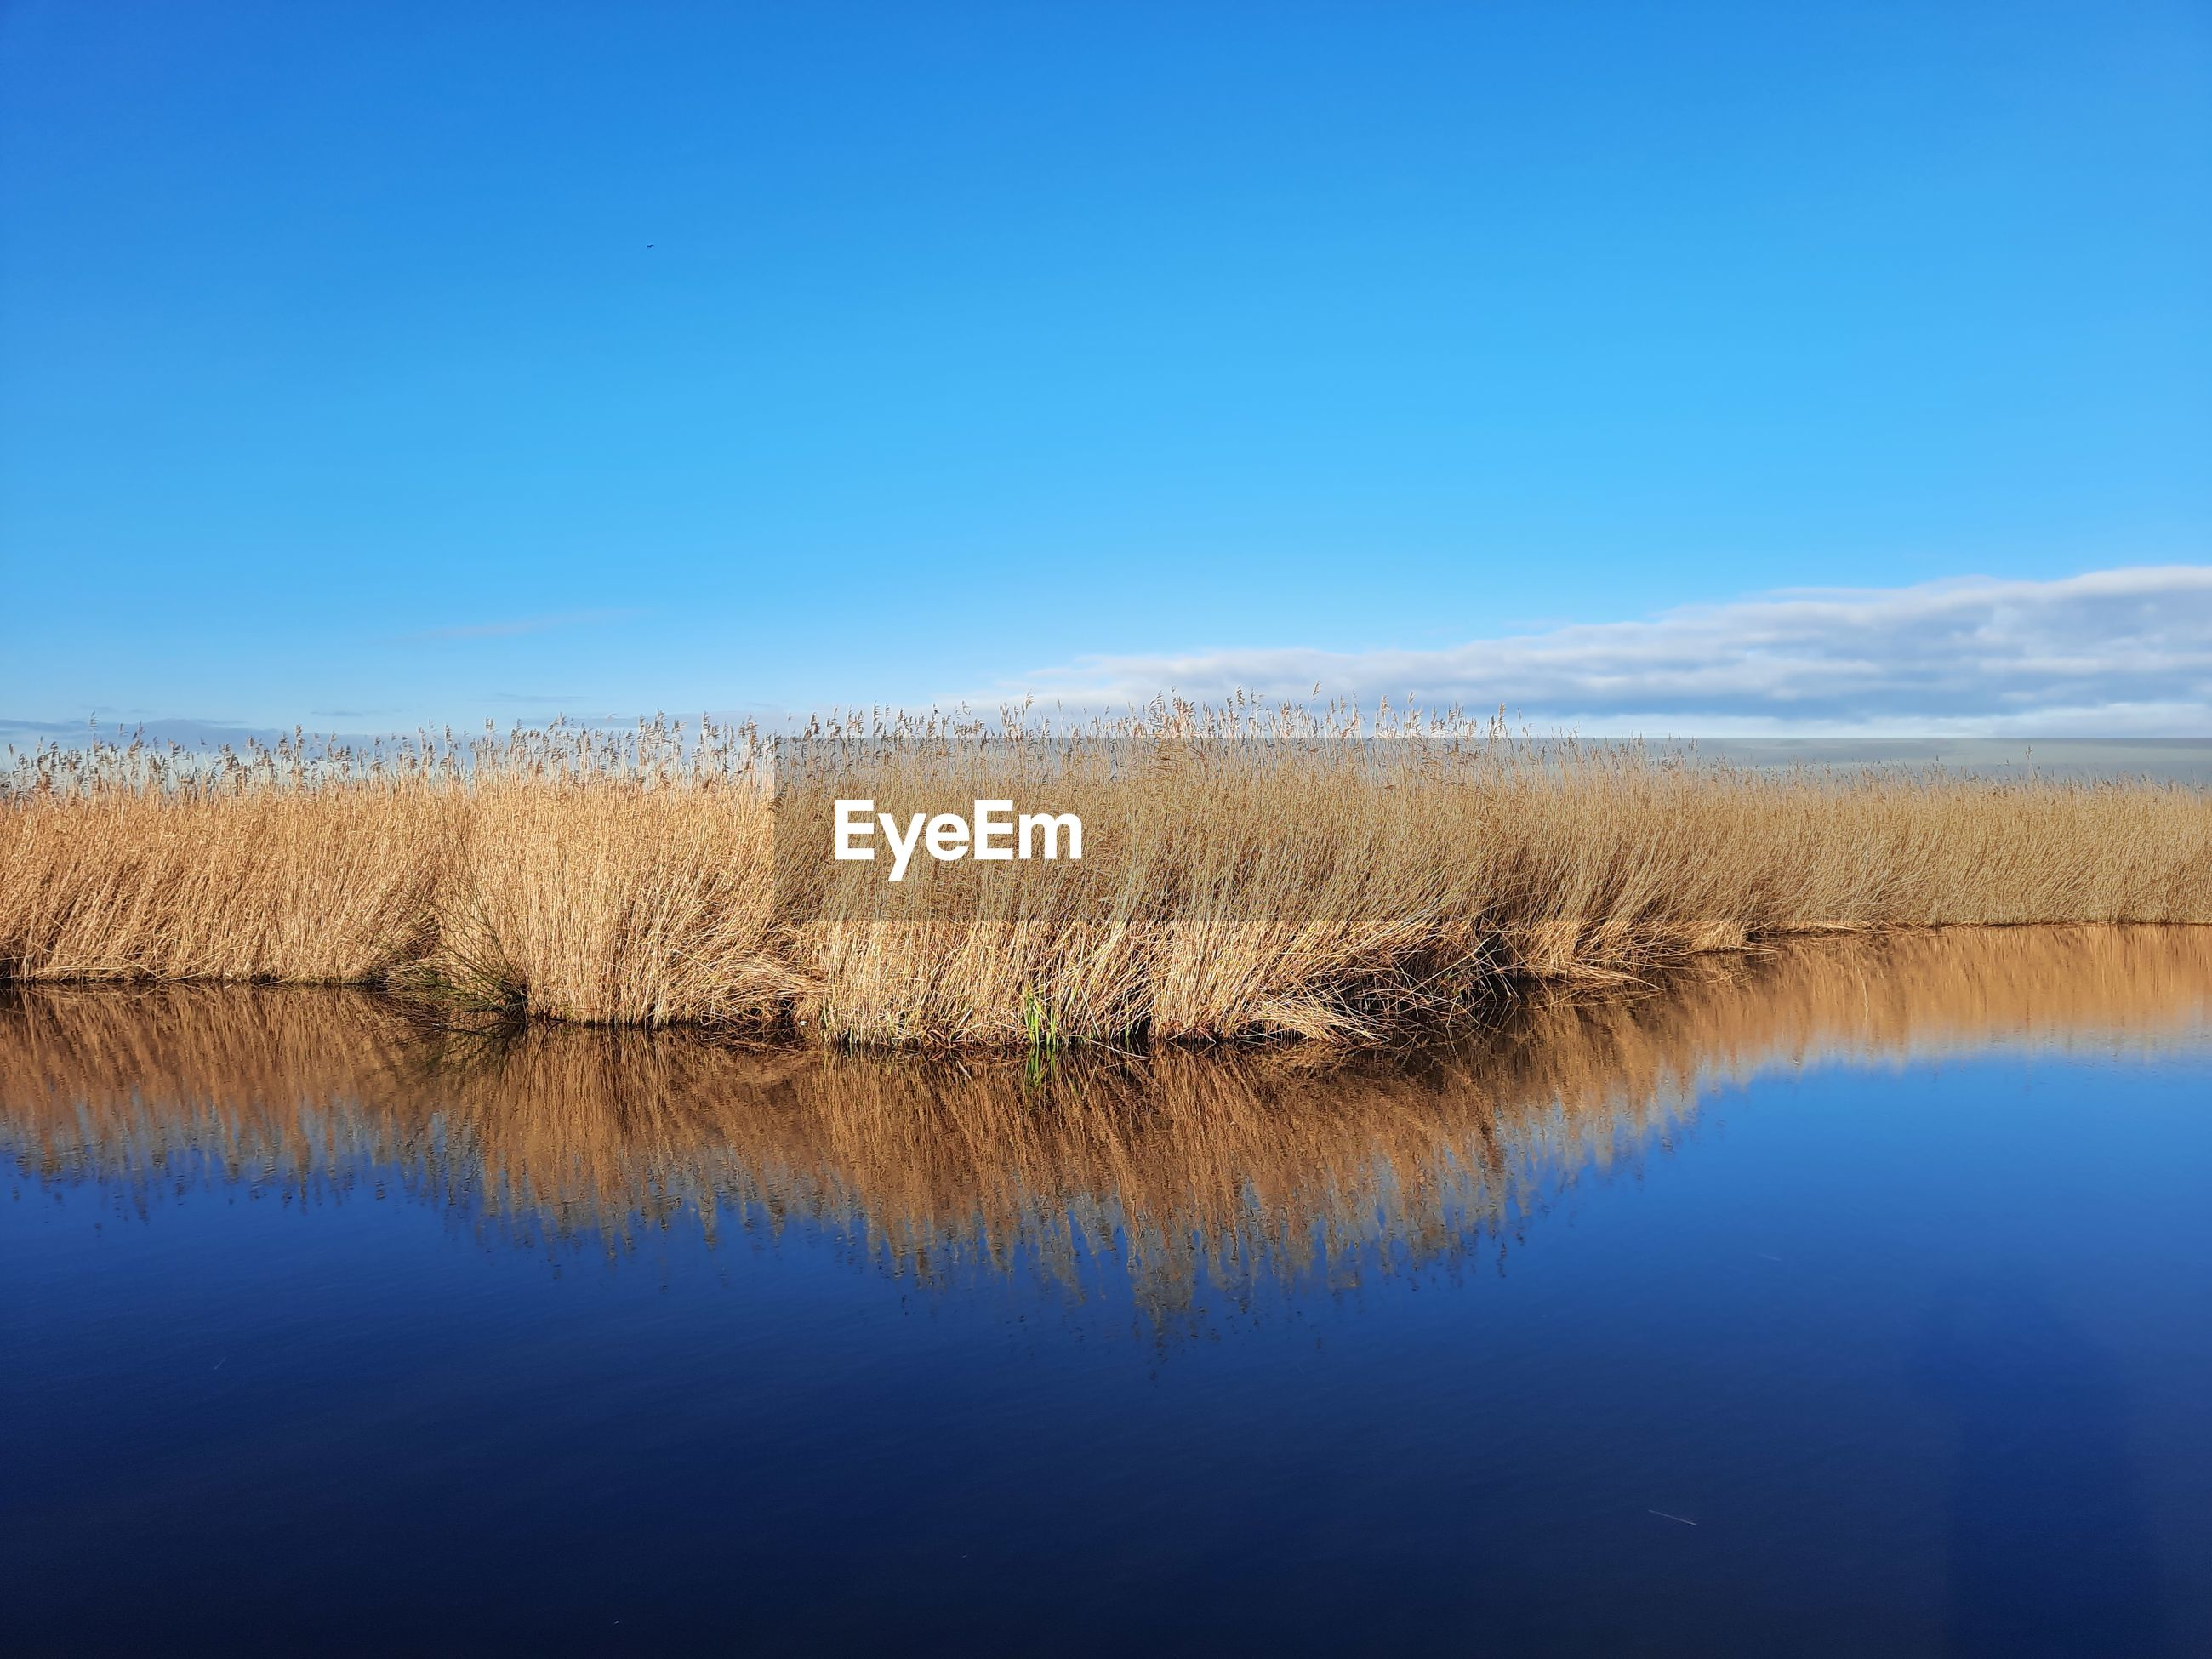 VIEW OF LAKE AGAINST CLEAR BLUE SKY